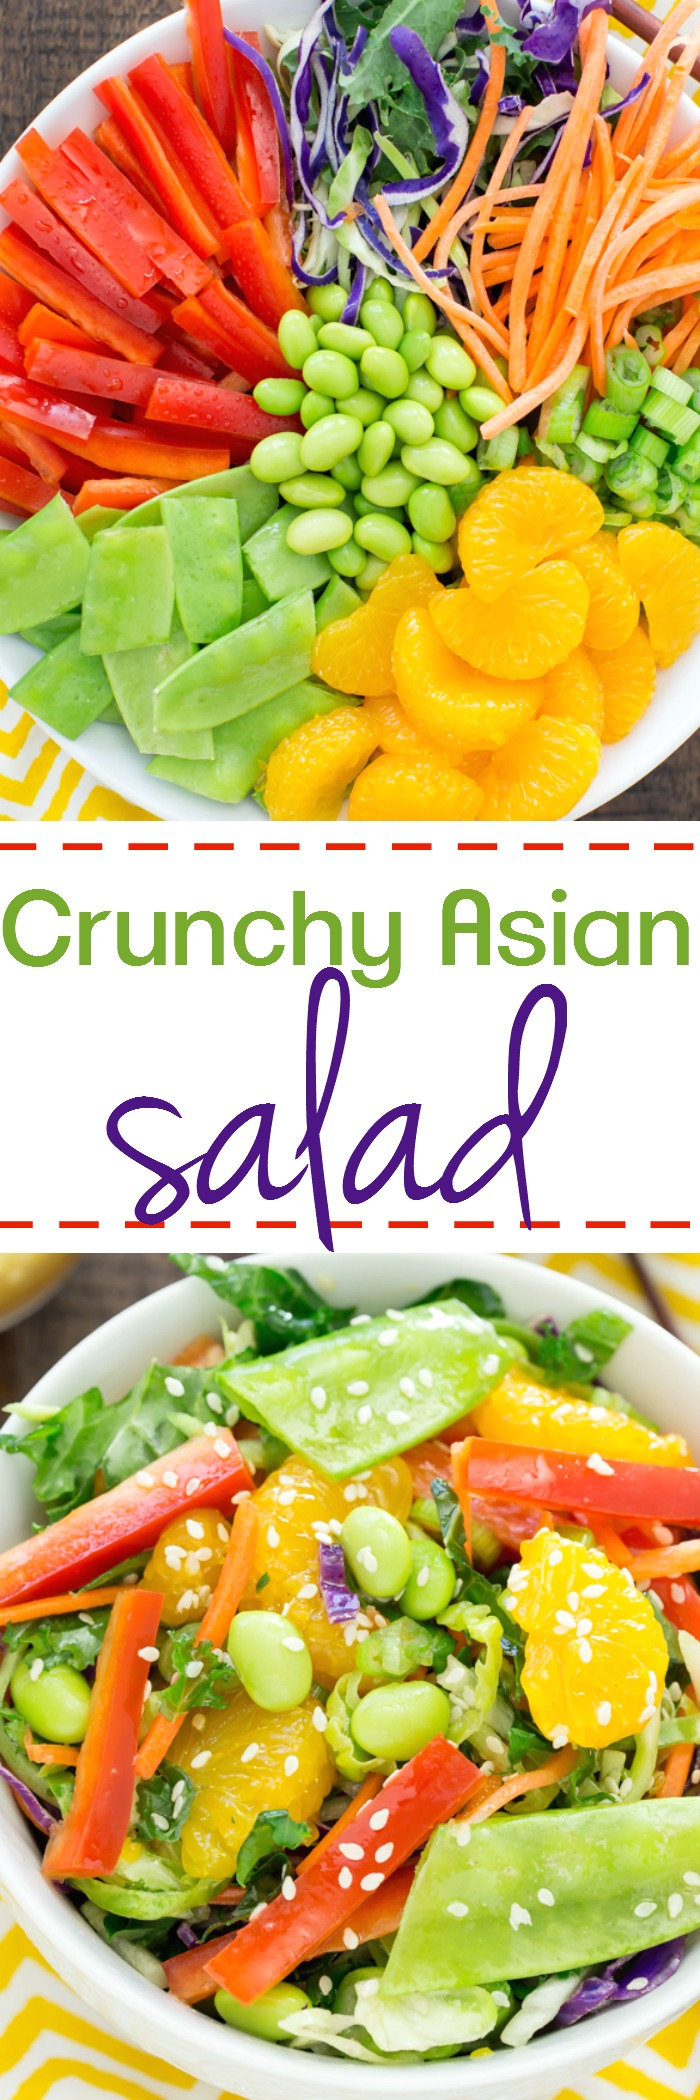 Crunchy Asian Salad is a flavor explosion in your mouth with red peppers, carrots, snow peas, edamame, and sweet oranges nestled on a kale broccoli mixture, drizzled with a sesame ginger dressing.